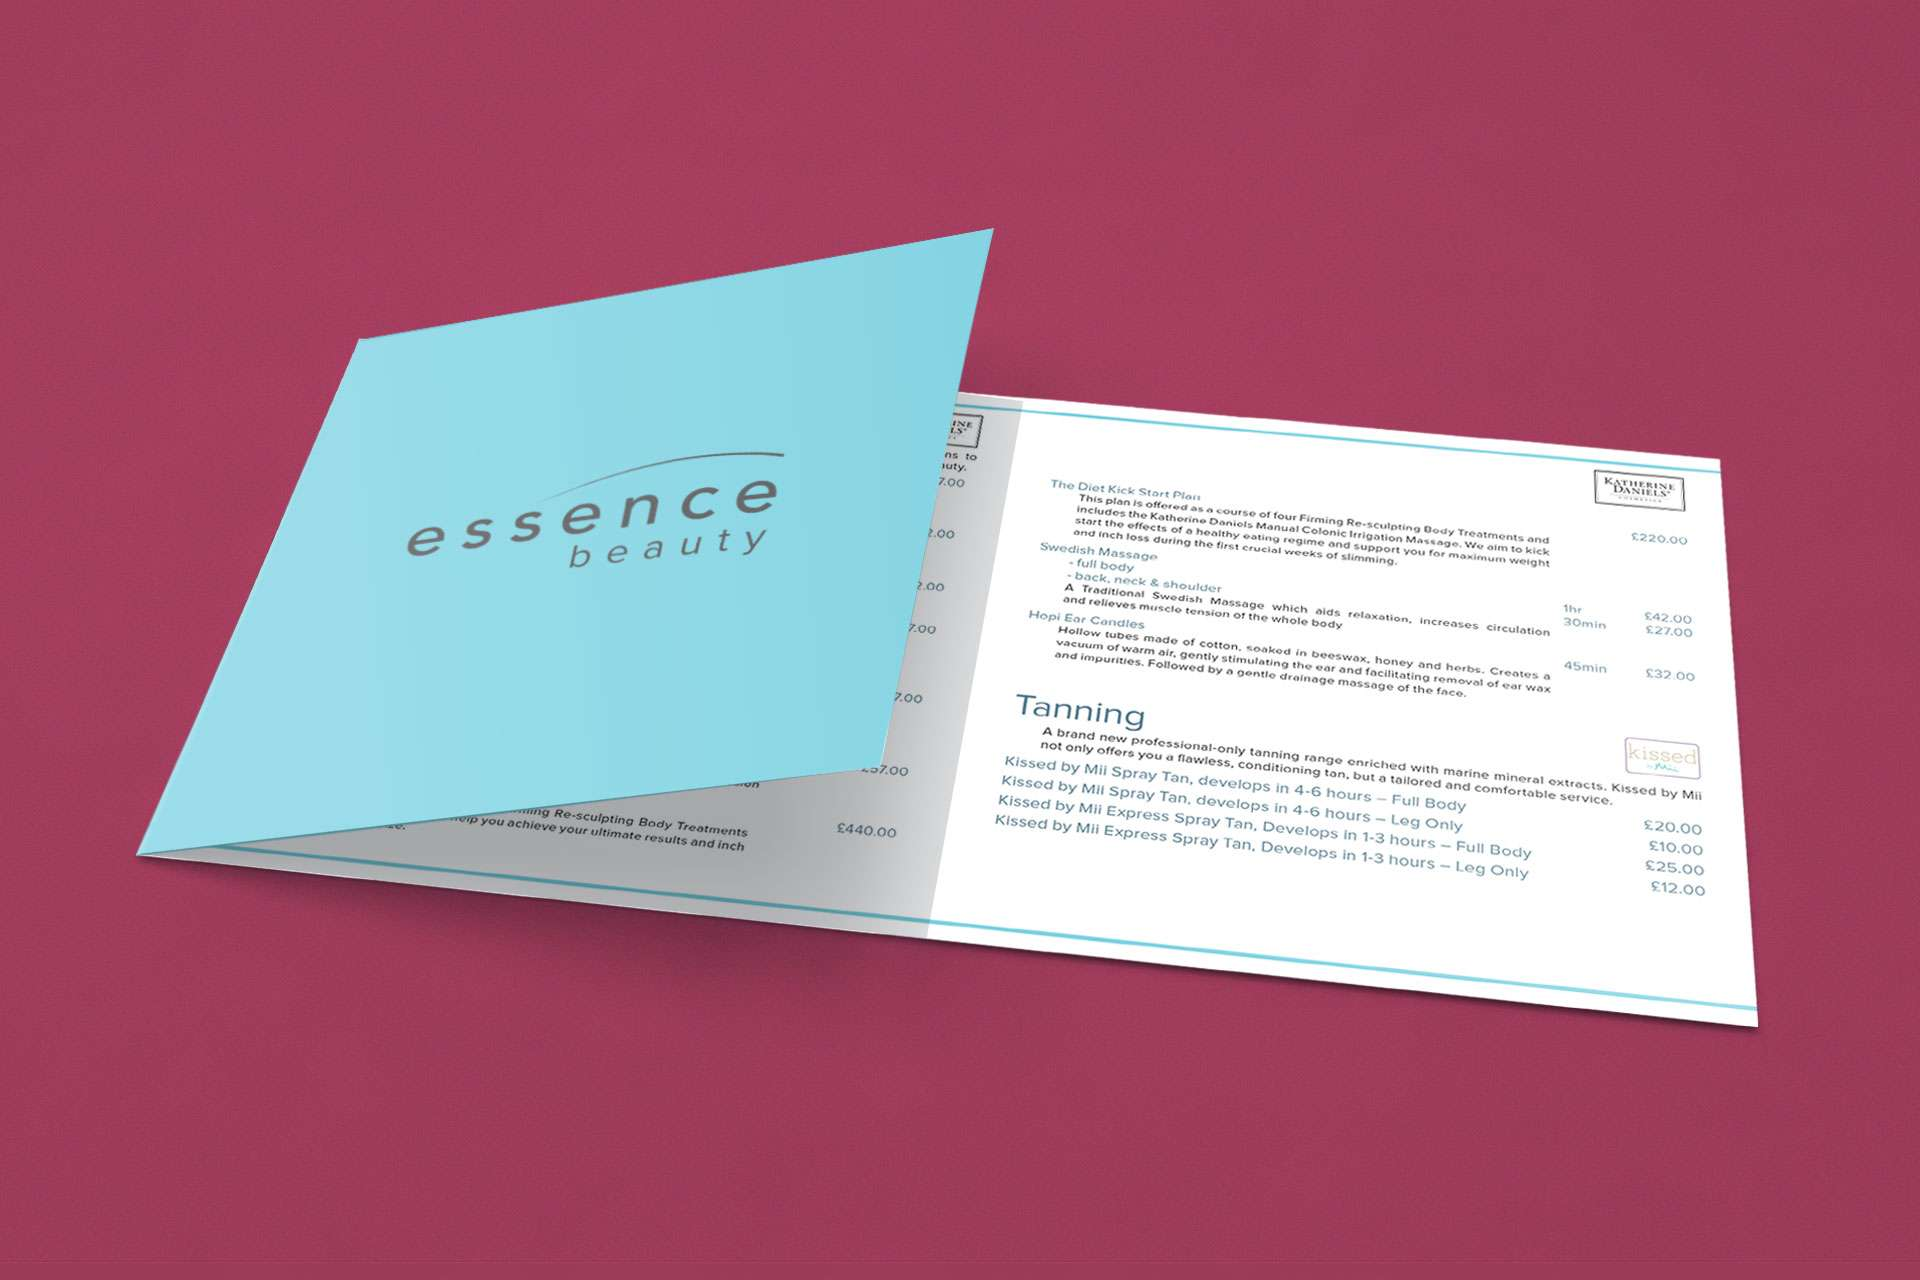 Essence Beauty Price List Design Wedmore